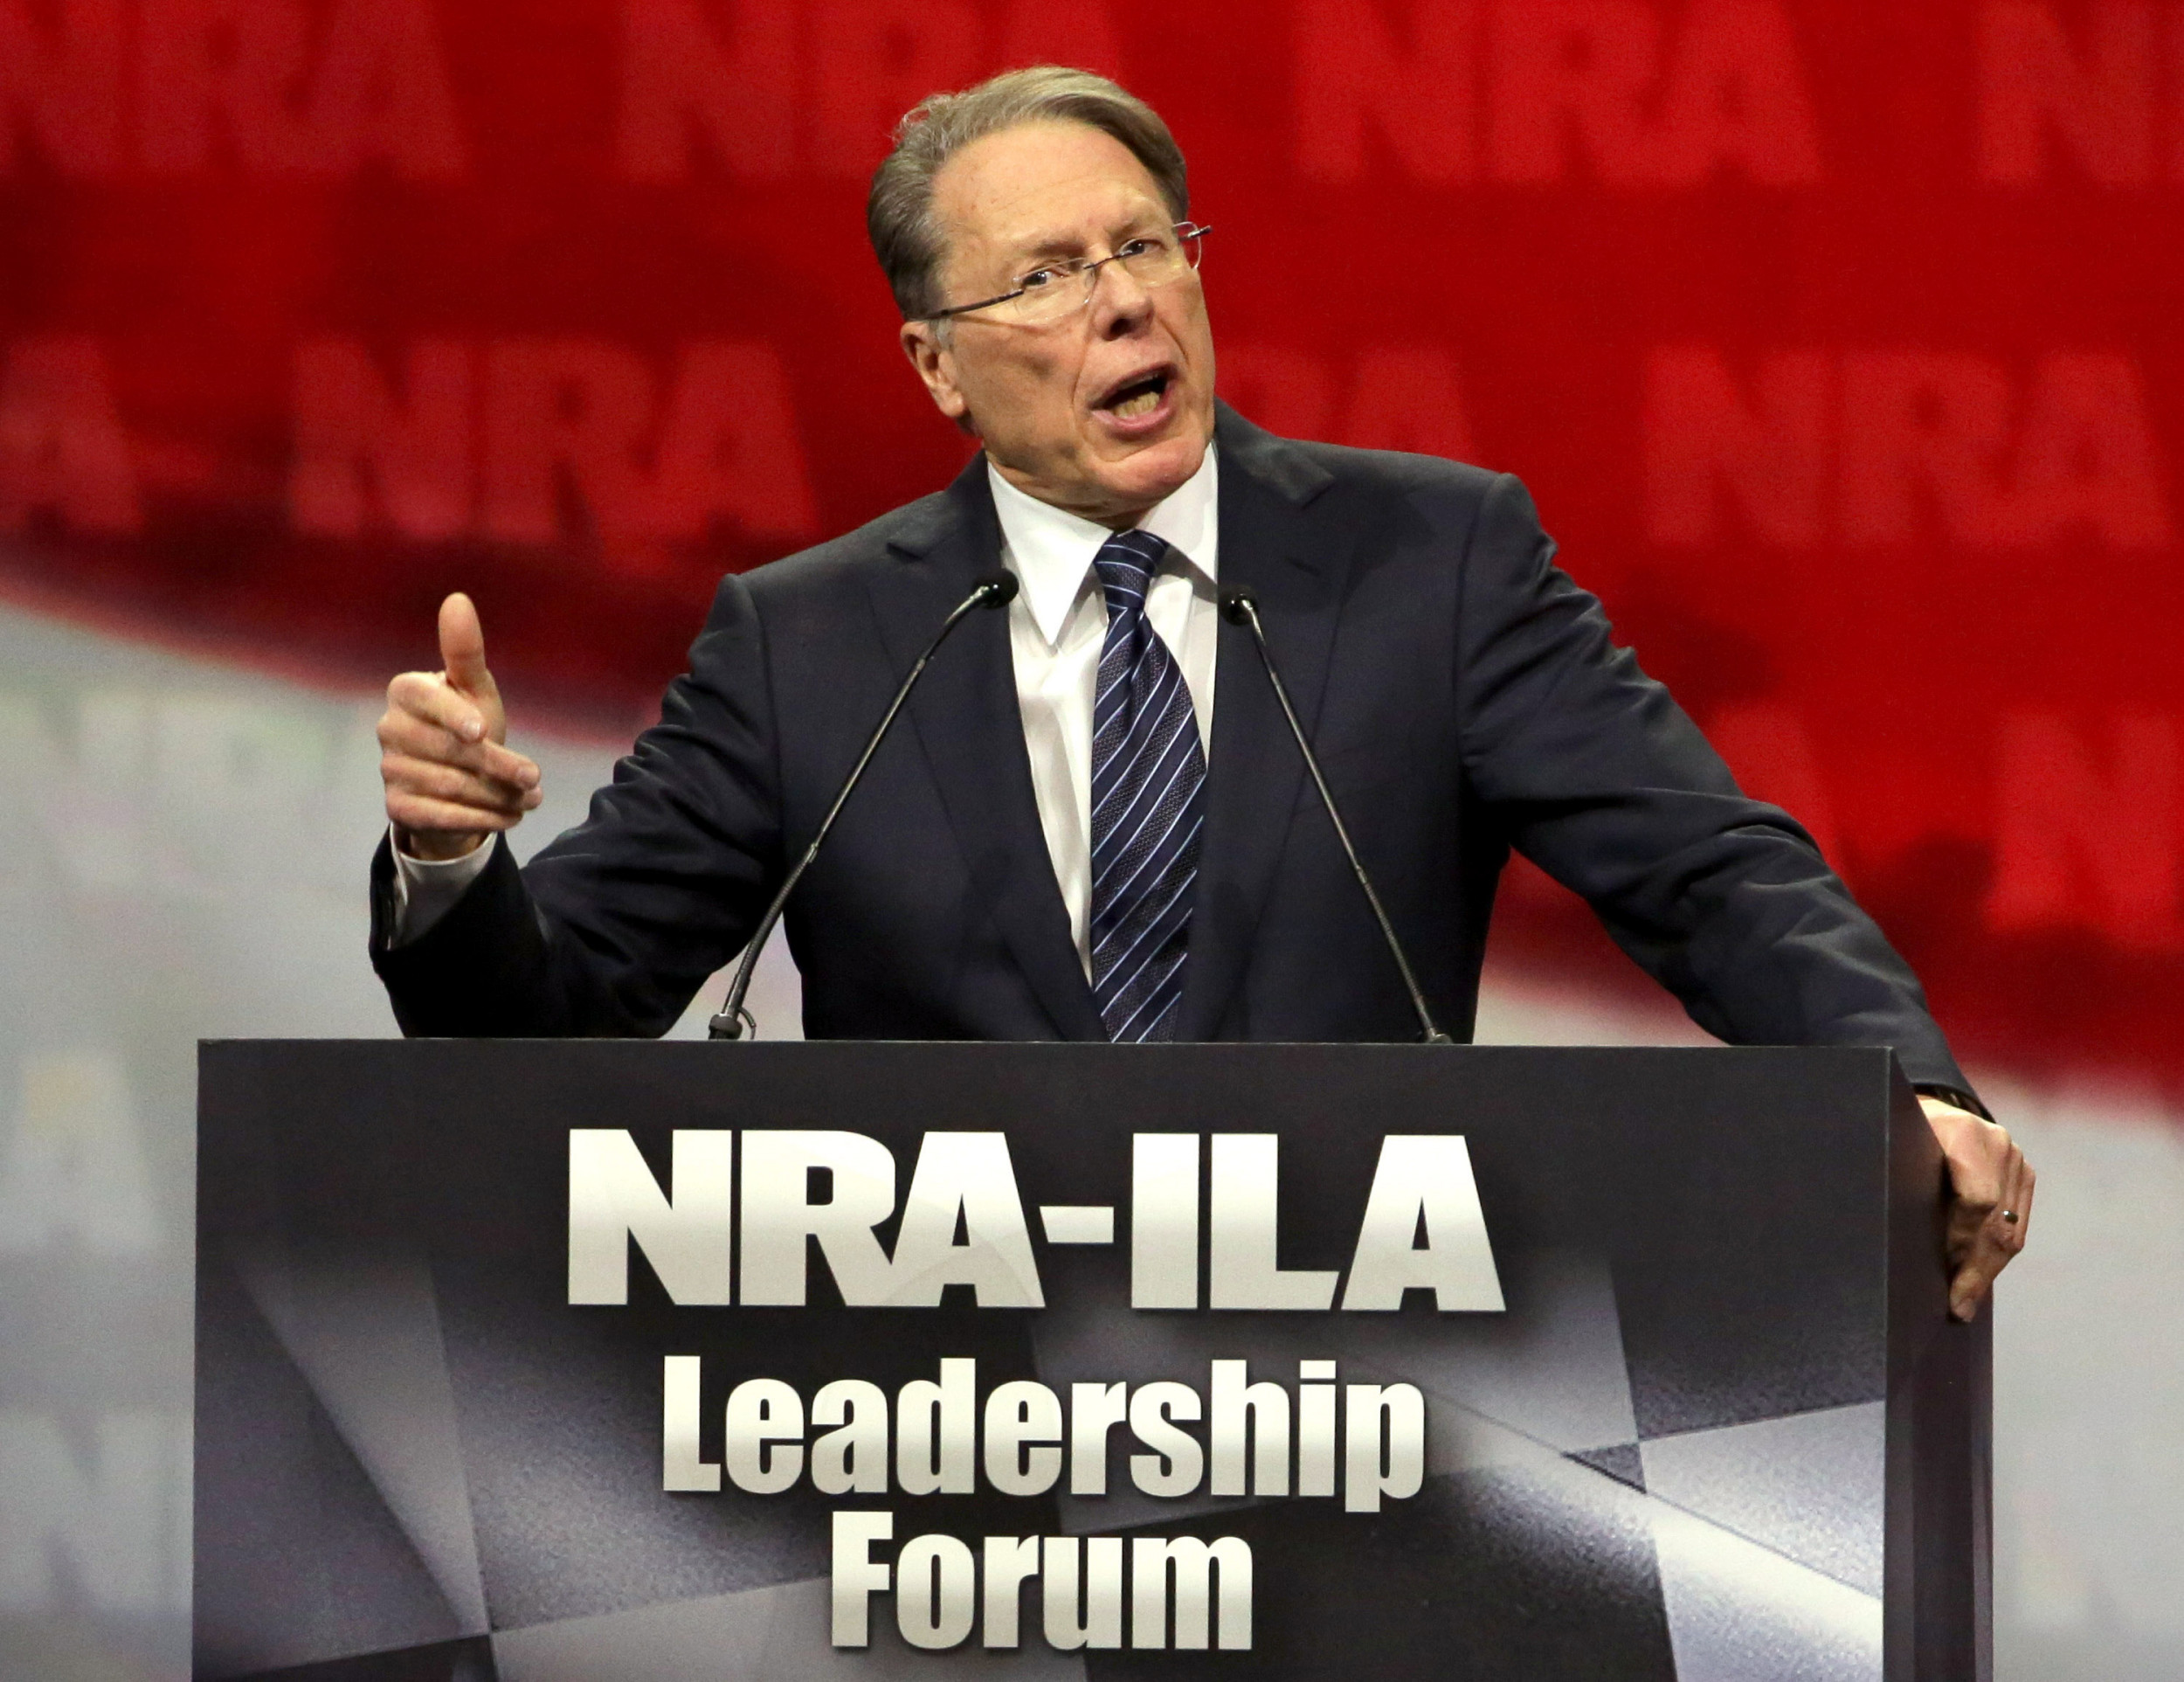 The D.C. attorney general is launching a new probe into the NRA's charitable arm, troubling the group's efforts to move beyond a cloud of financial scandal